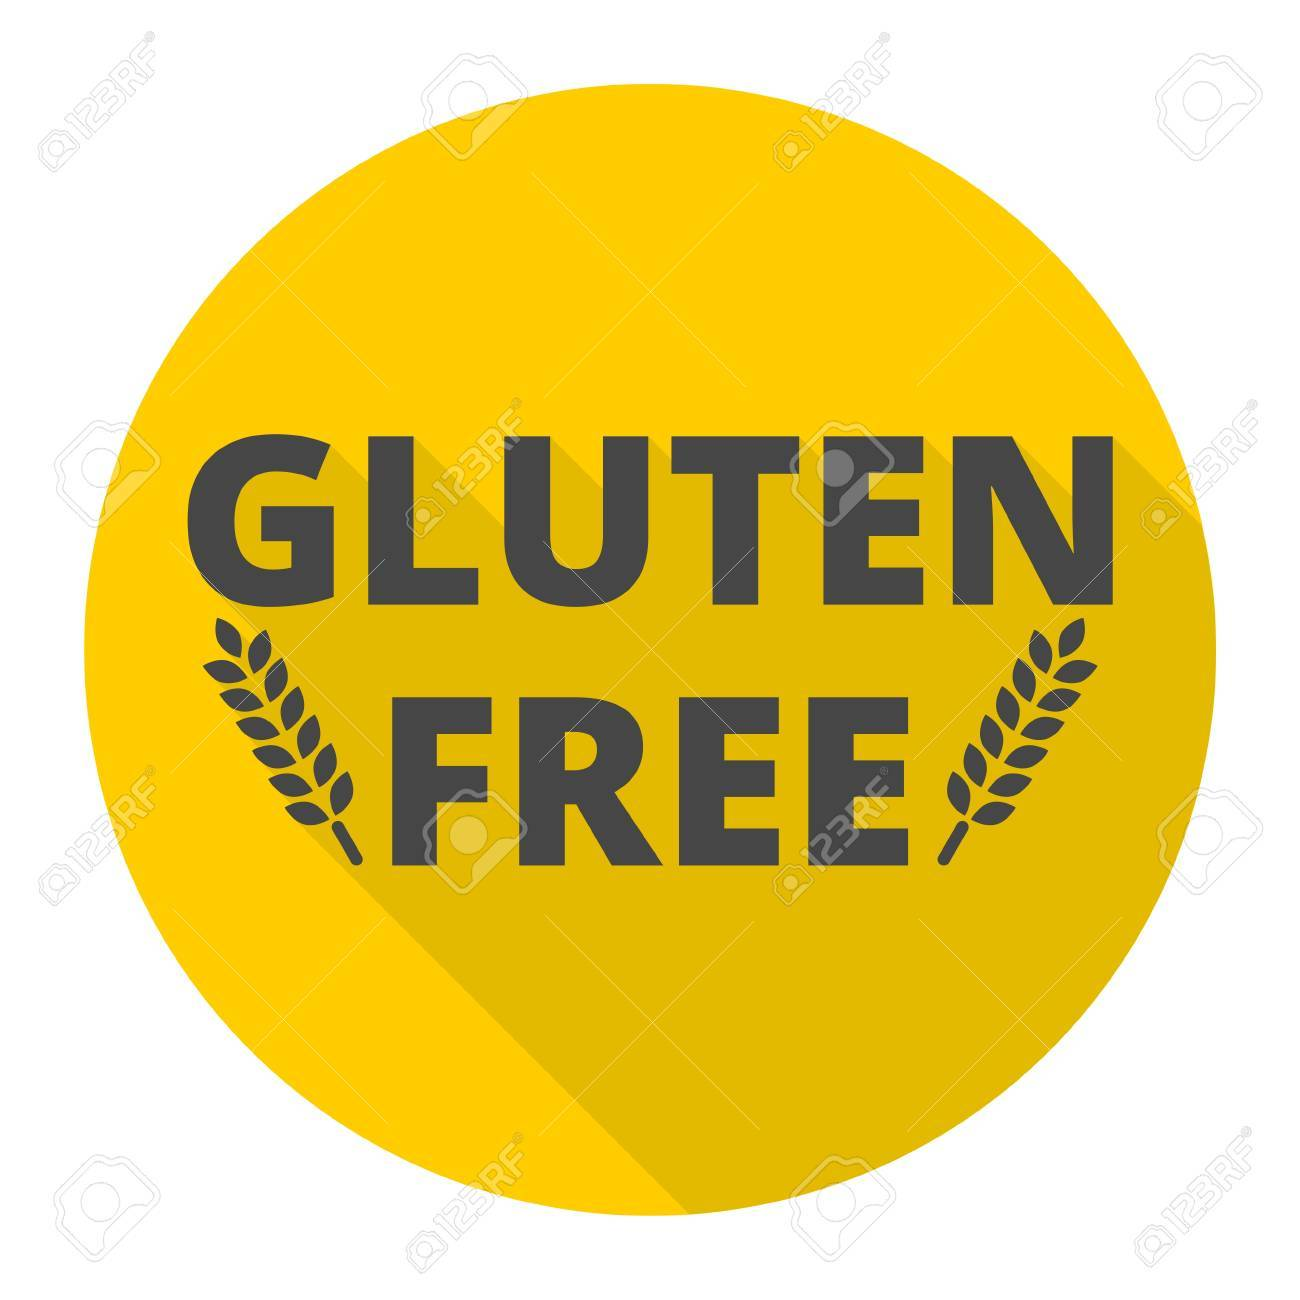 Gluten free icon with long shadow